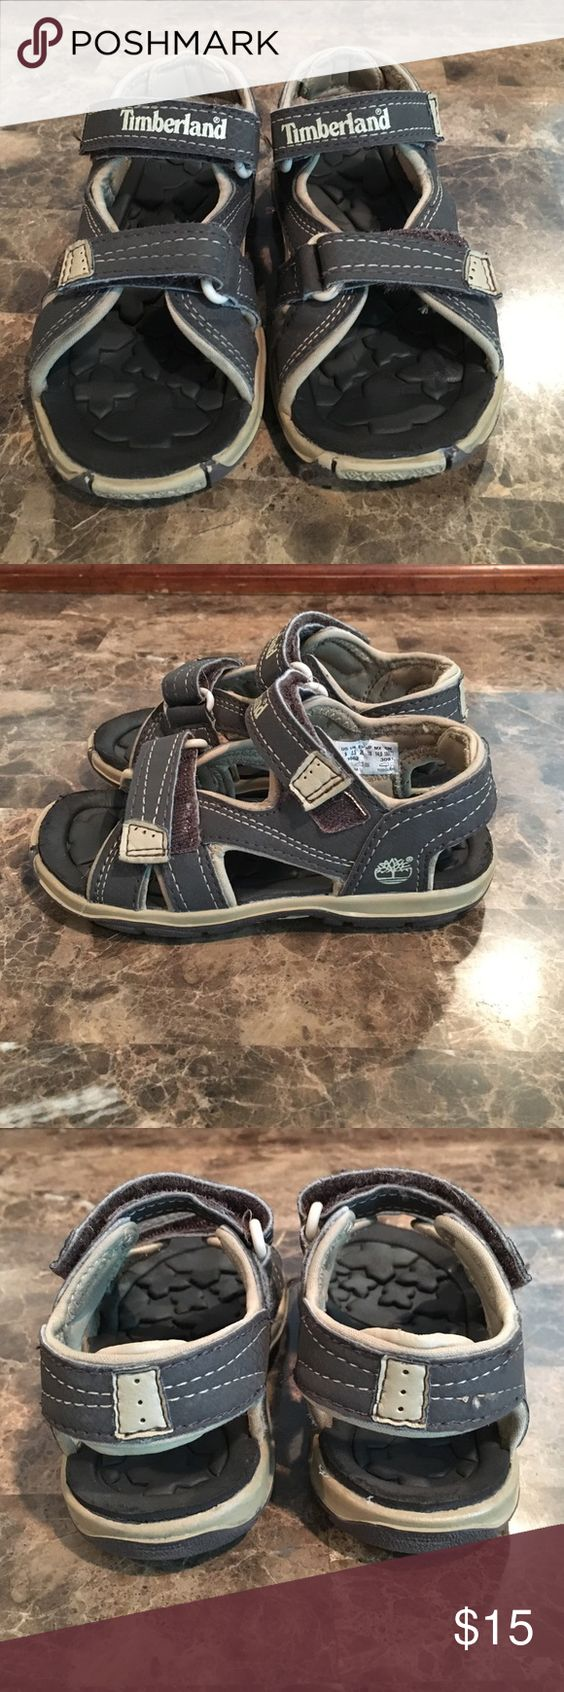 timberland sandals for toddler boys